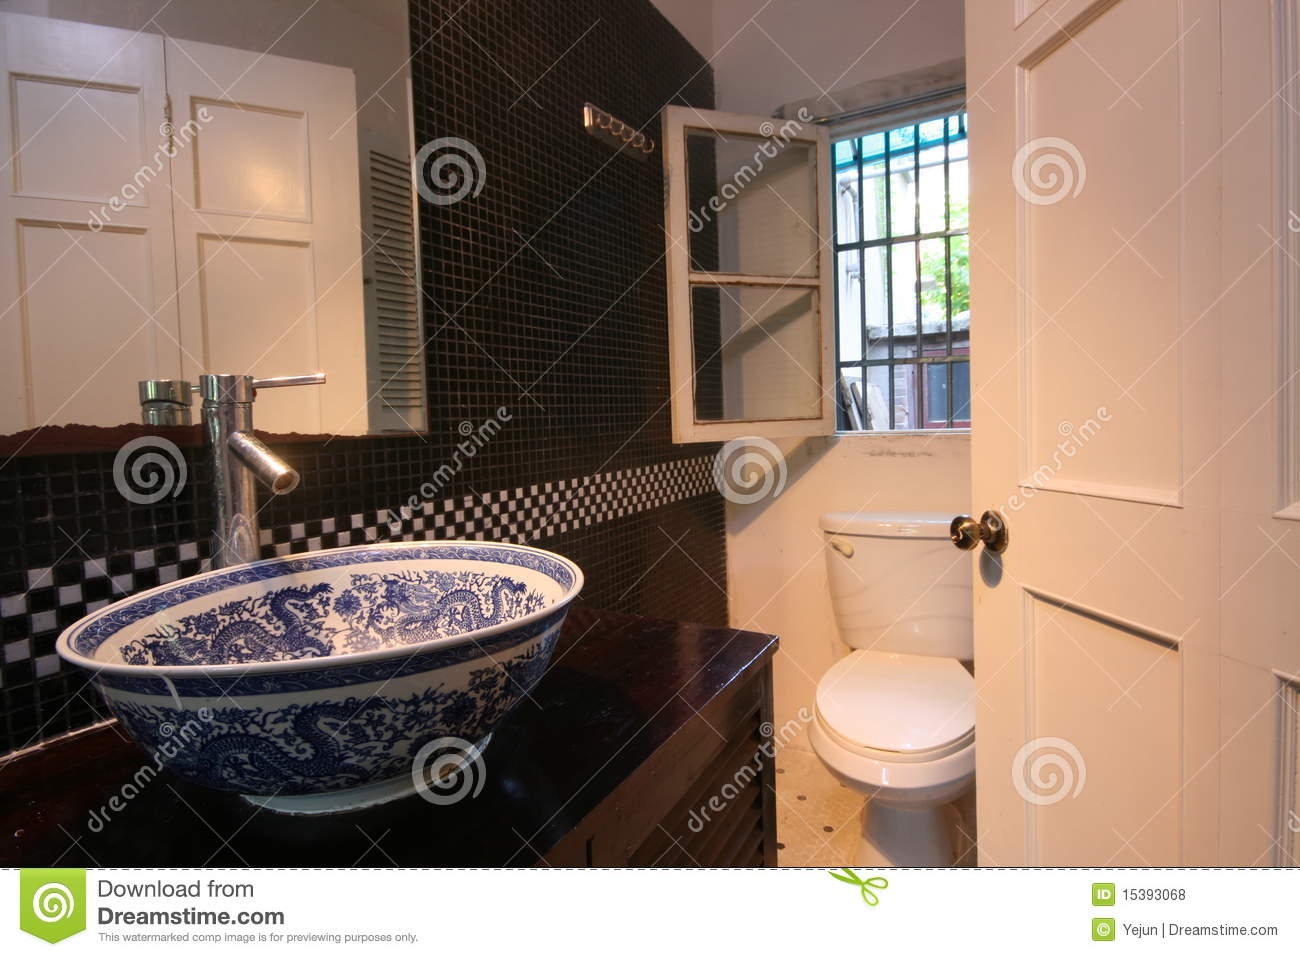 Bathroom Royalty Free Stock Photos Image 15393068